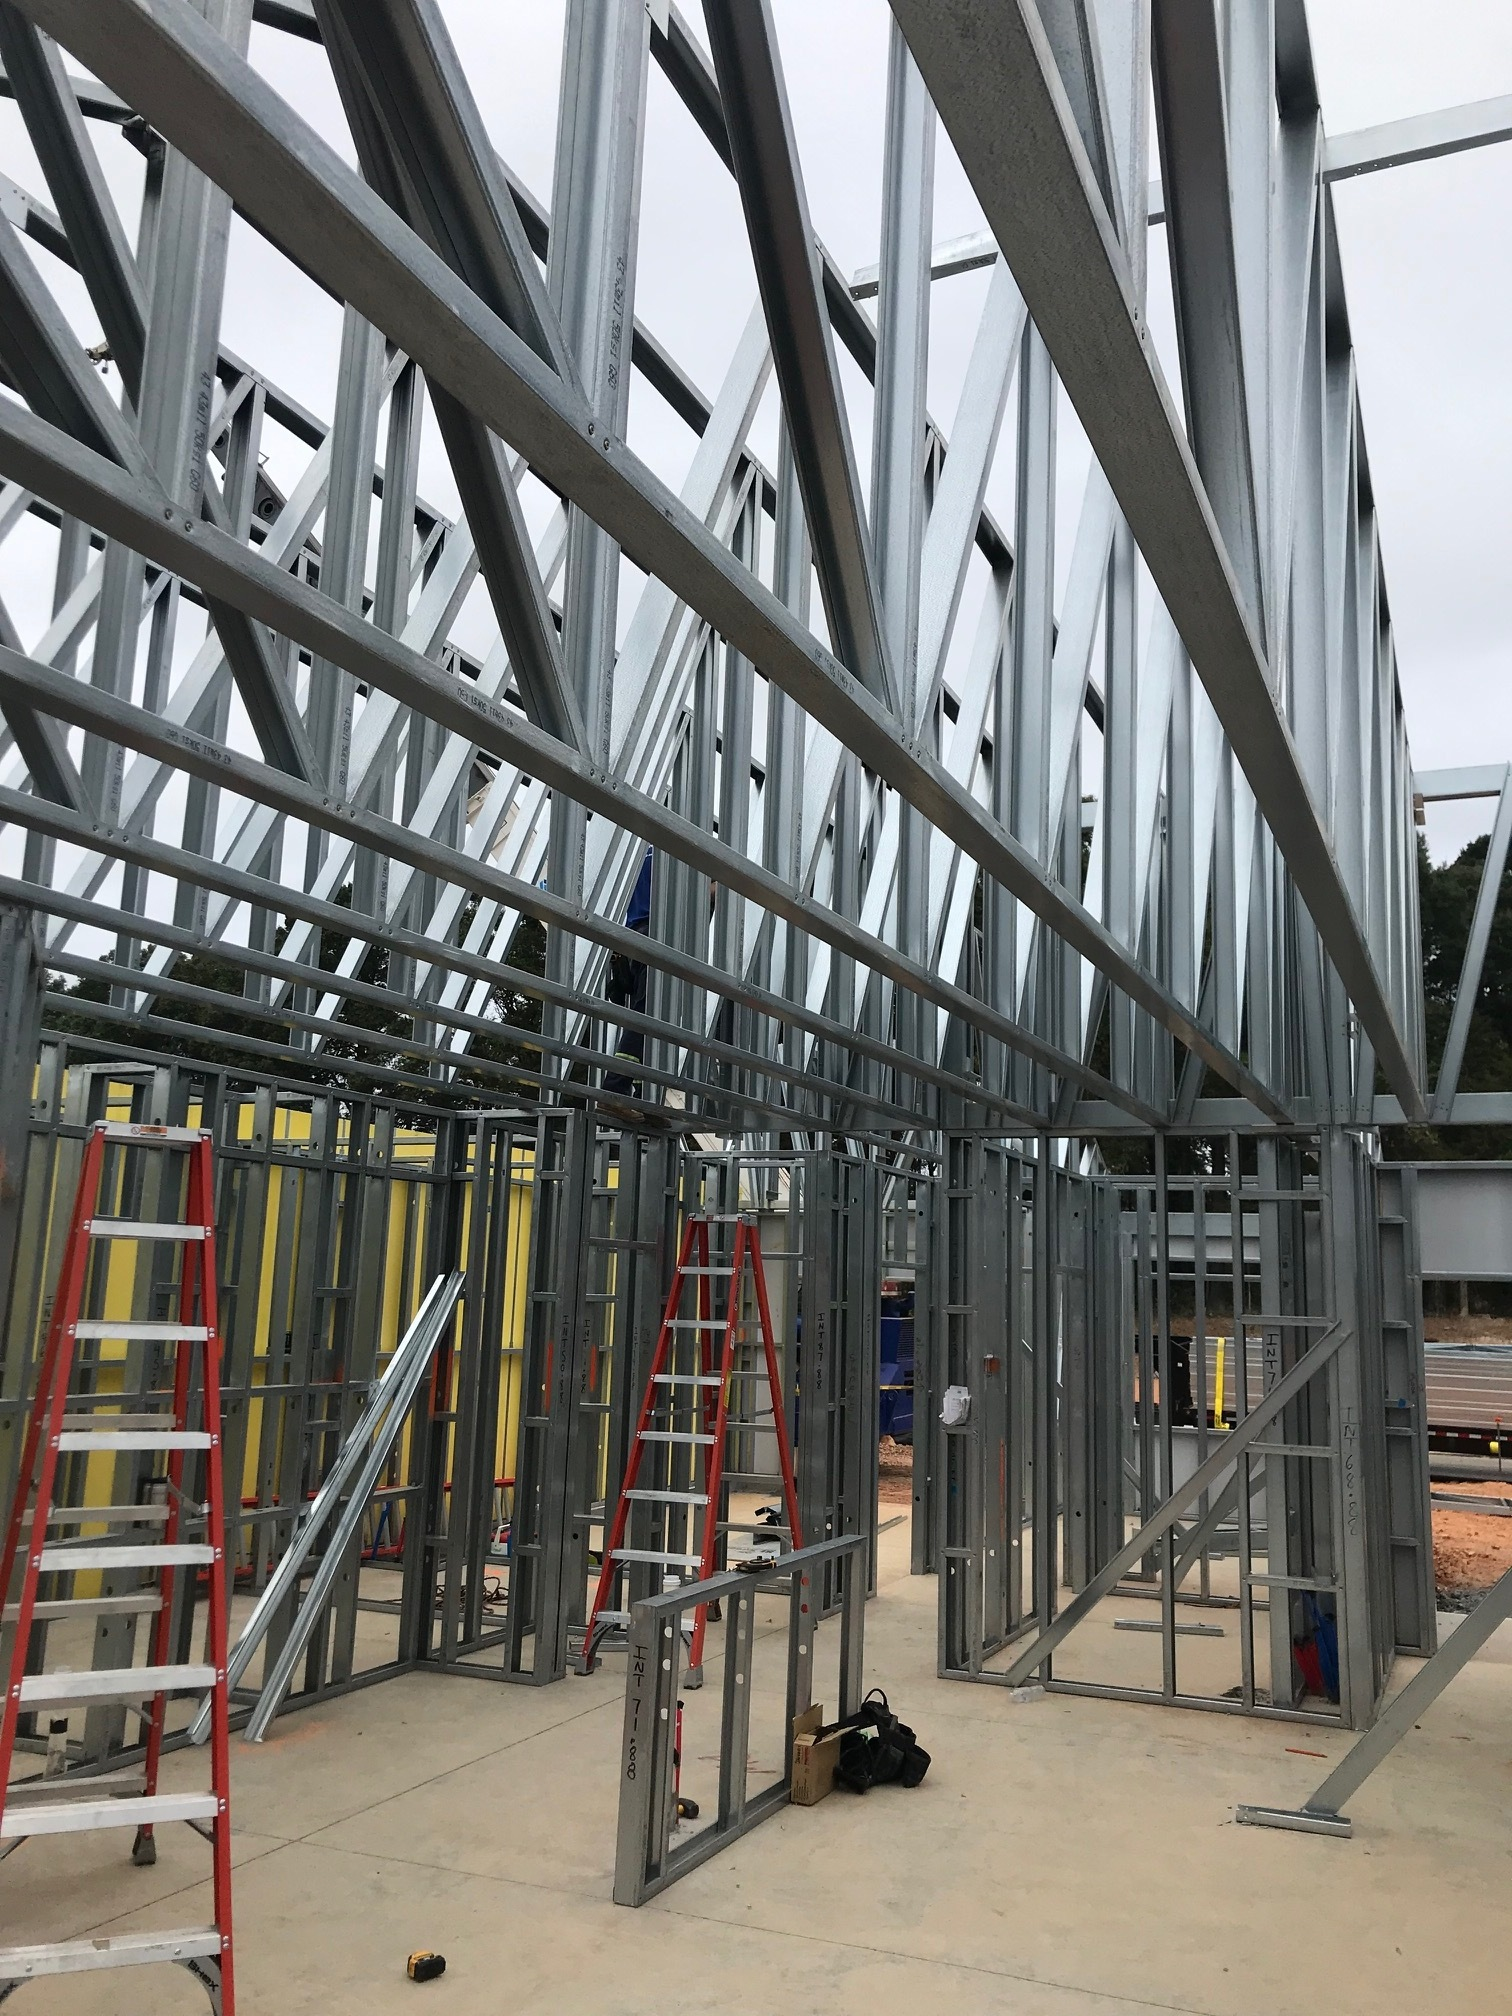 3 Ways Cold-Formed Steel Slashes Construction Waste (and Costs)